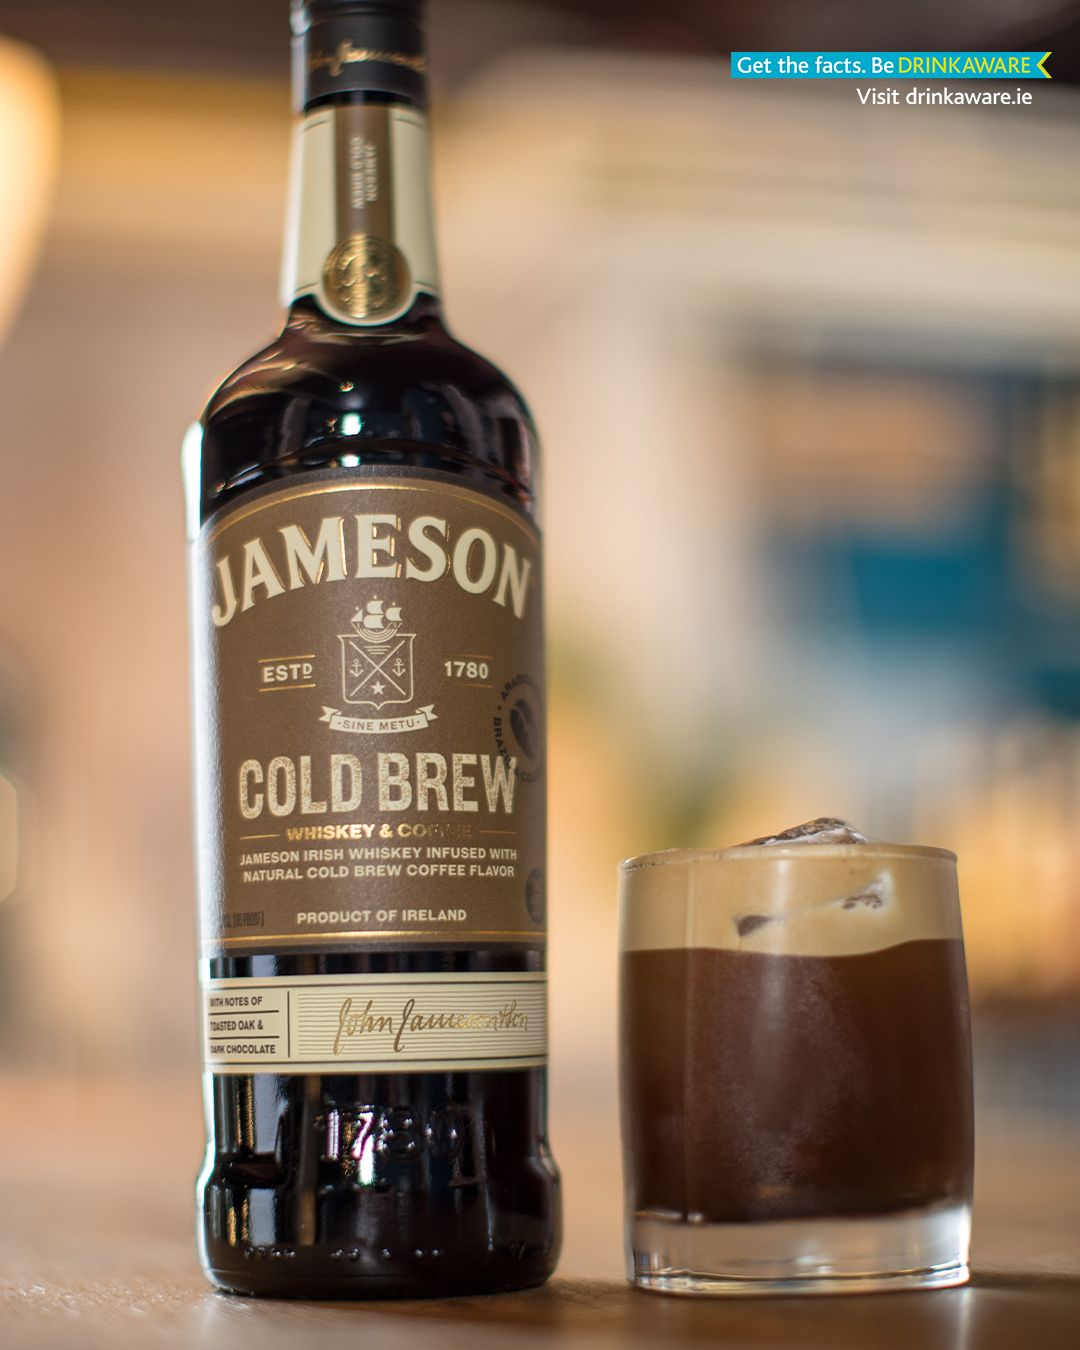 Cold Brew-tini in a glass beside Jameson bottle